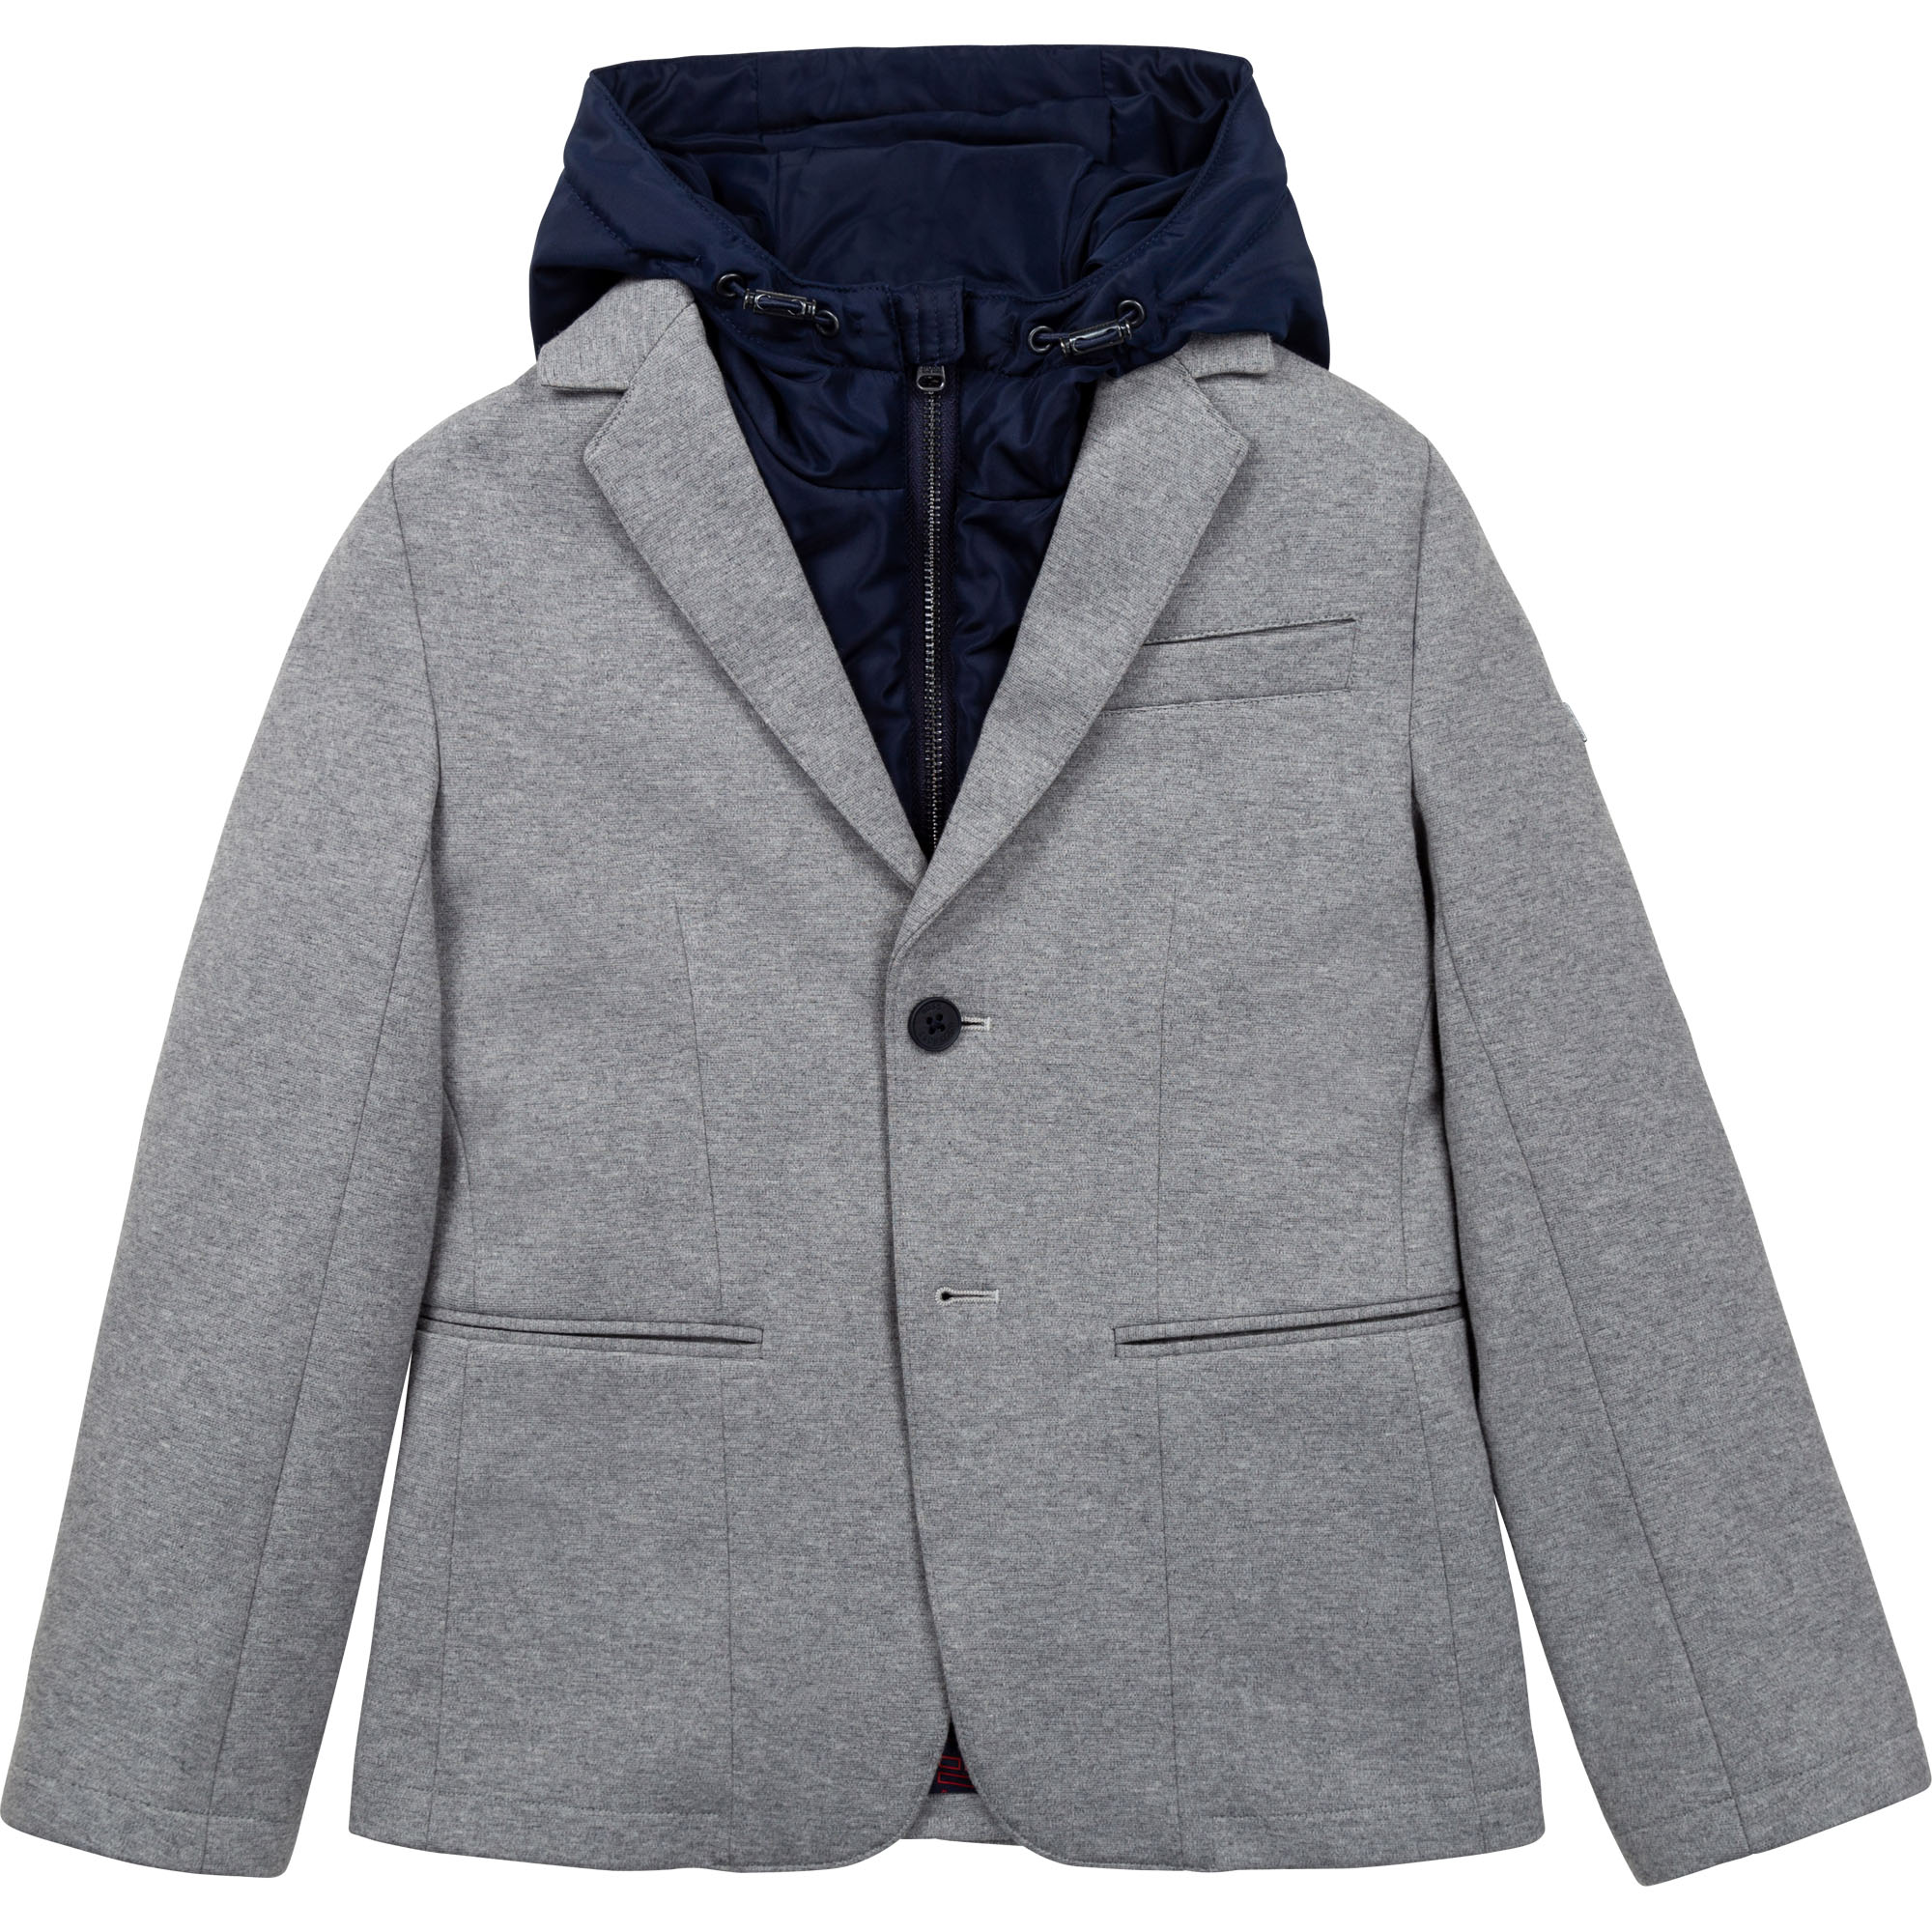 2-in-1 milano suit jacket BOSS for BOY